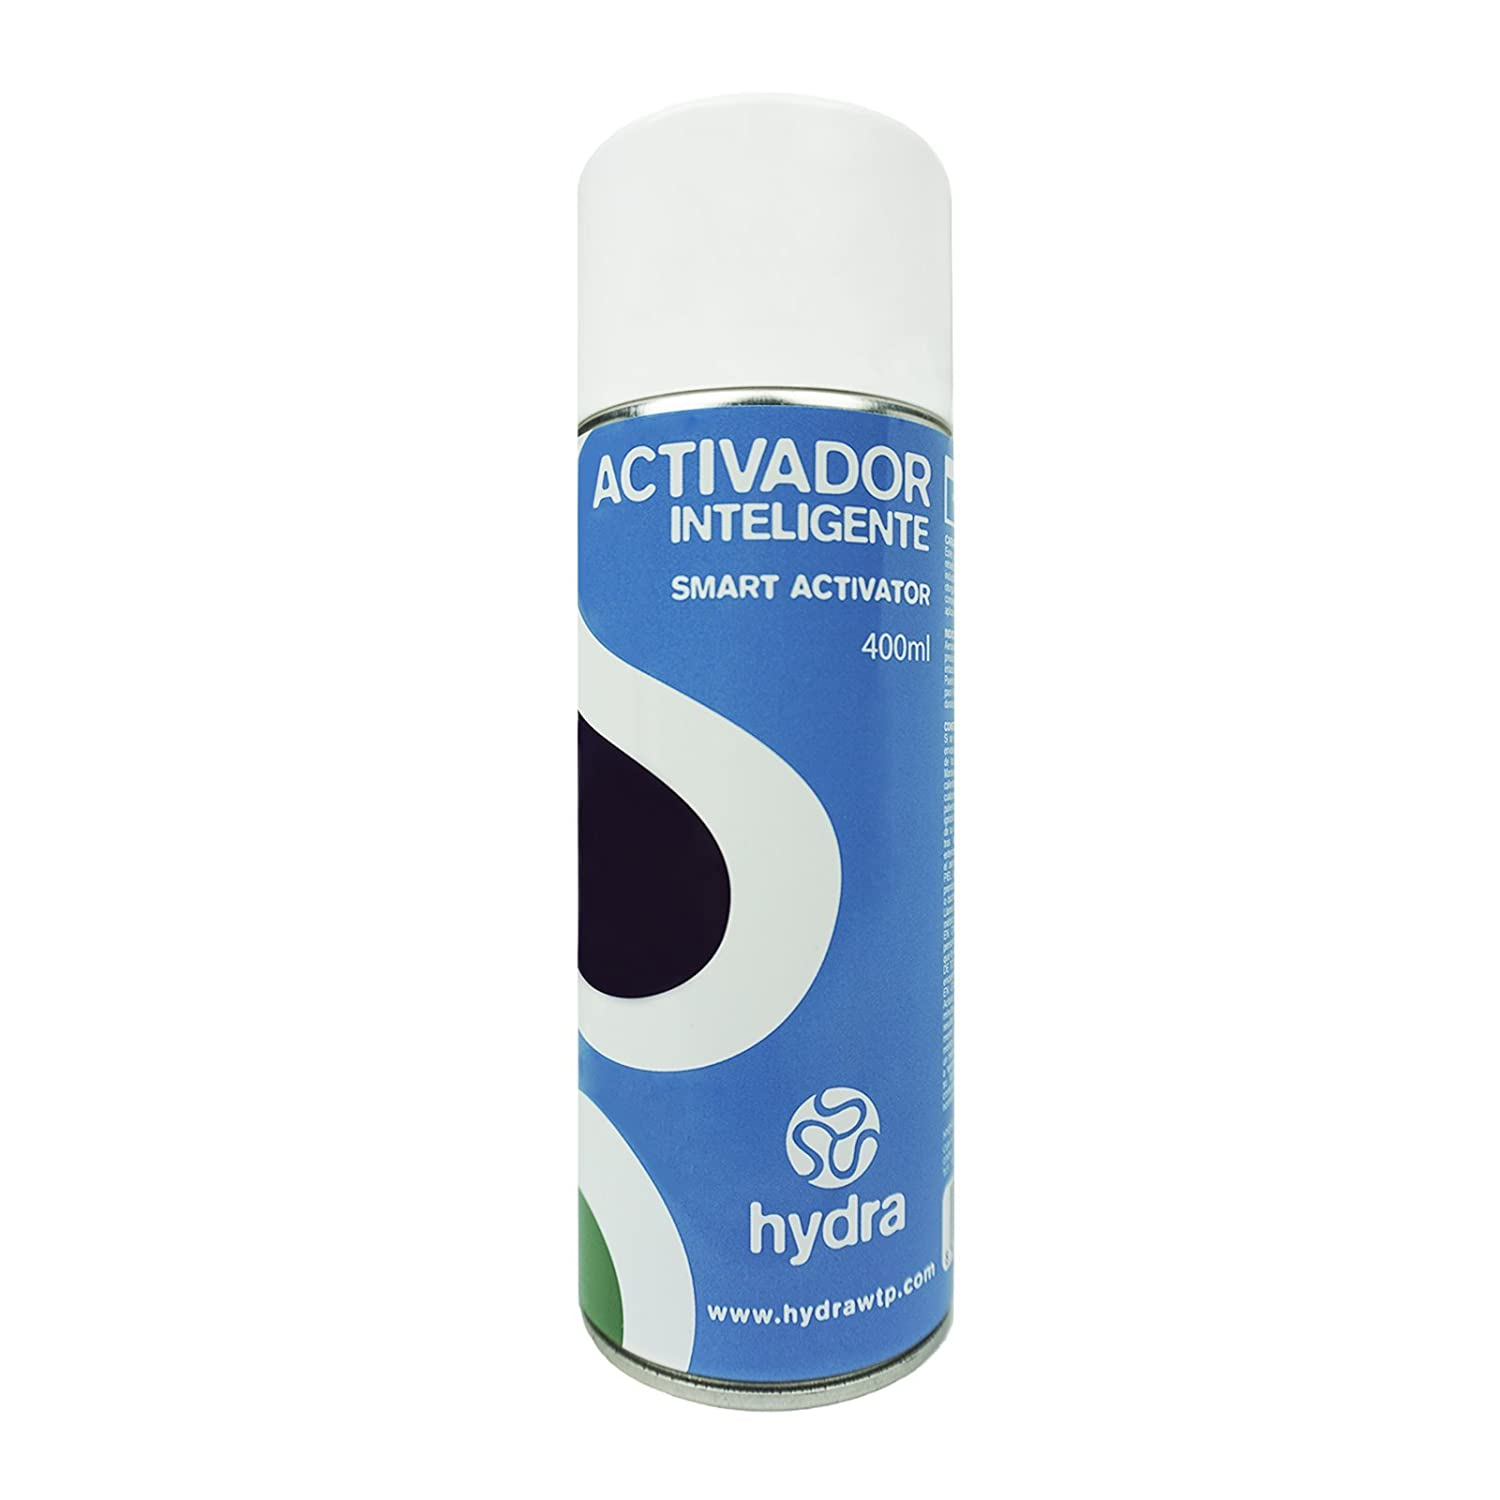 activateur hydrographique 400 ml hydrographics hydrographie transfert a l'eau HYDRA WATER TRANSFER PRINTING